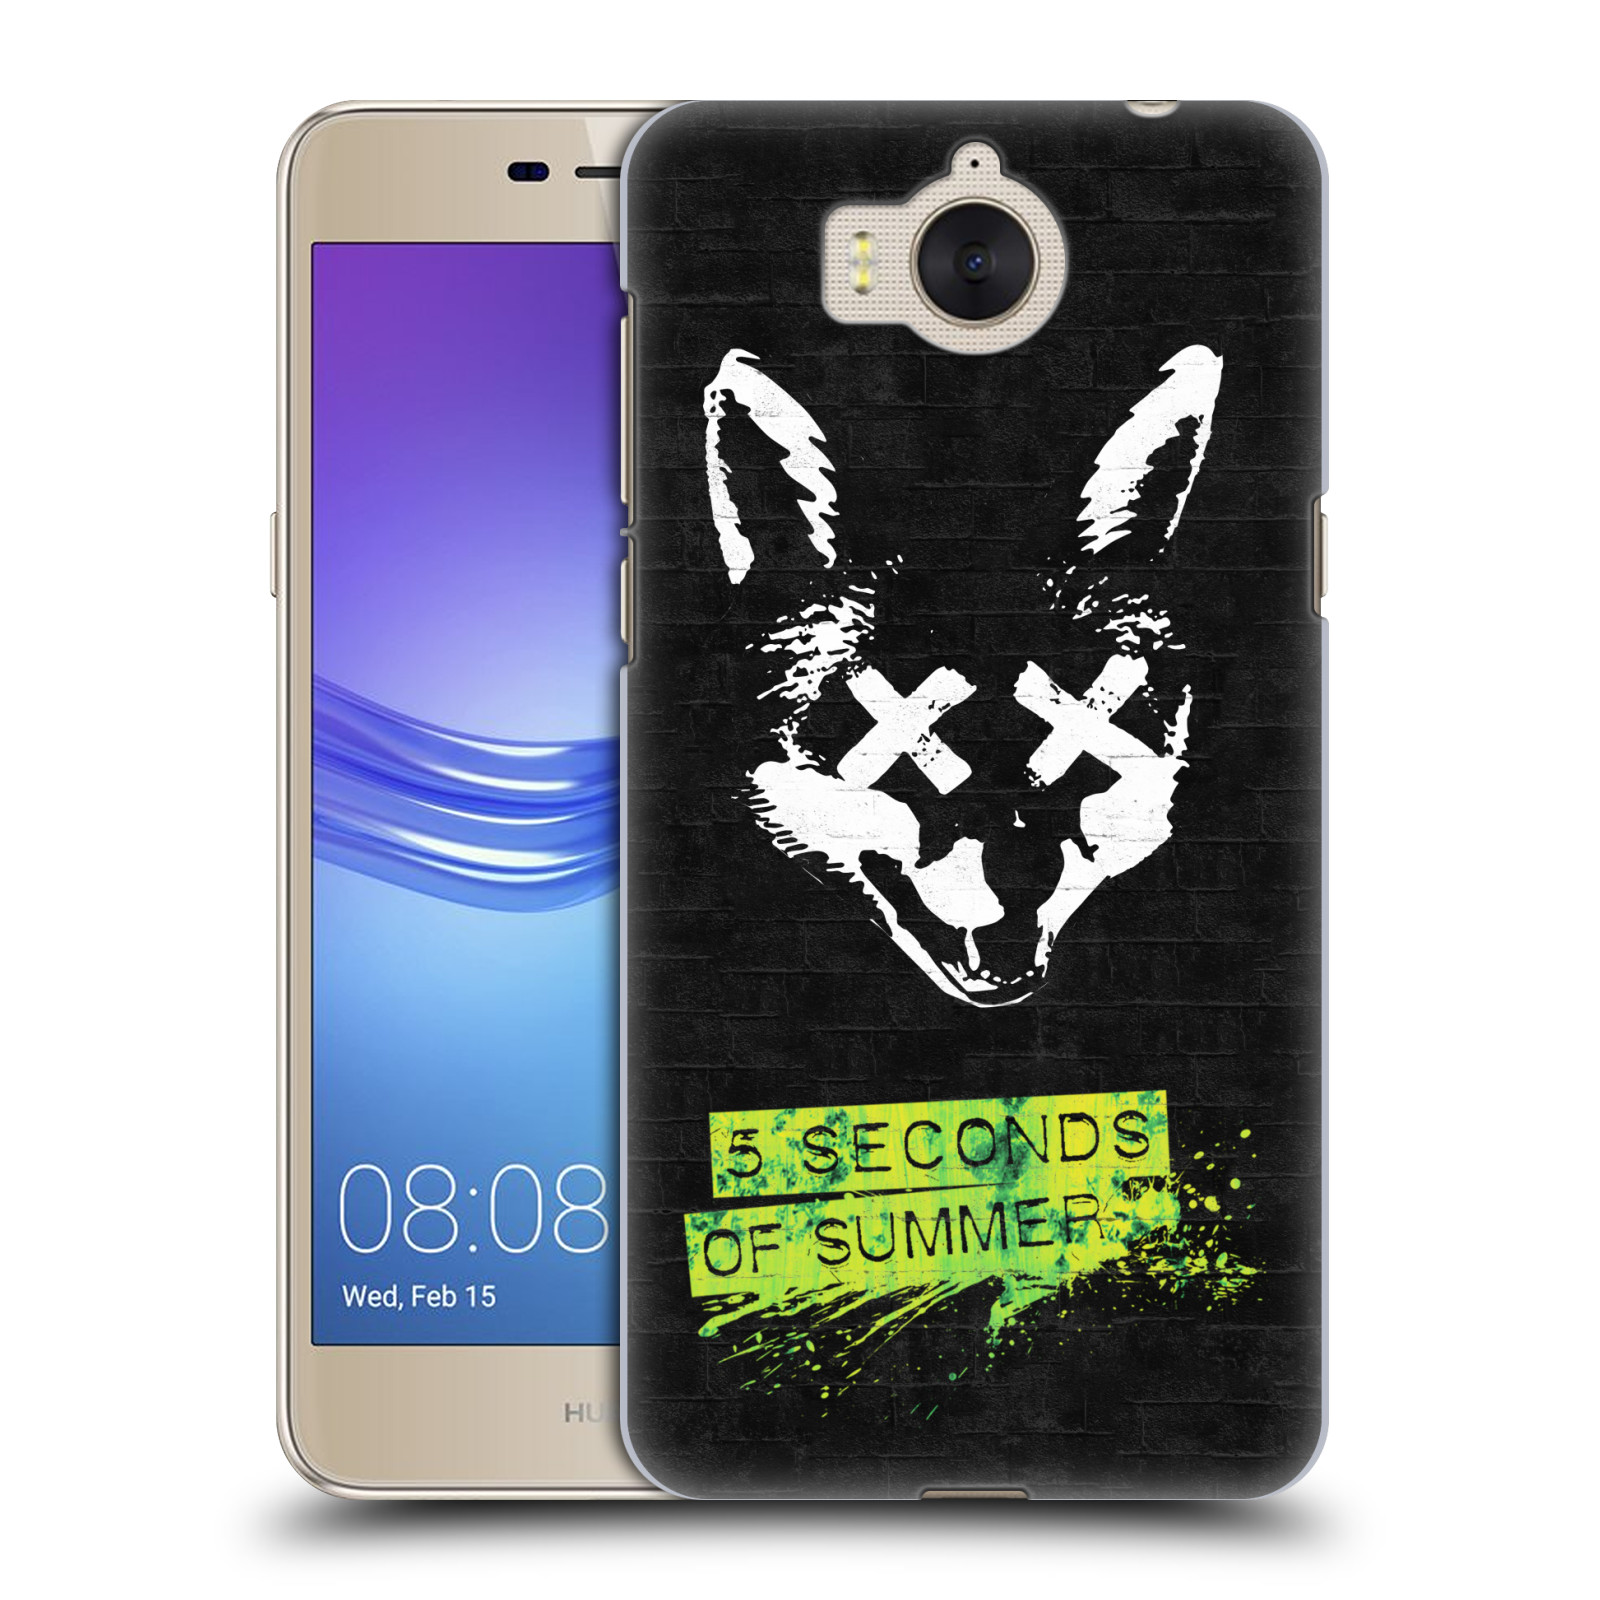 Plastové pouzdro na mobil Huawei Y6 2017 - Head Case - 5 Seconds of Summer - Fox